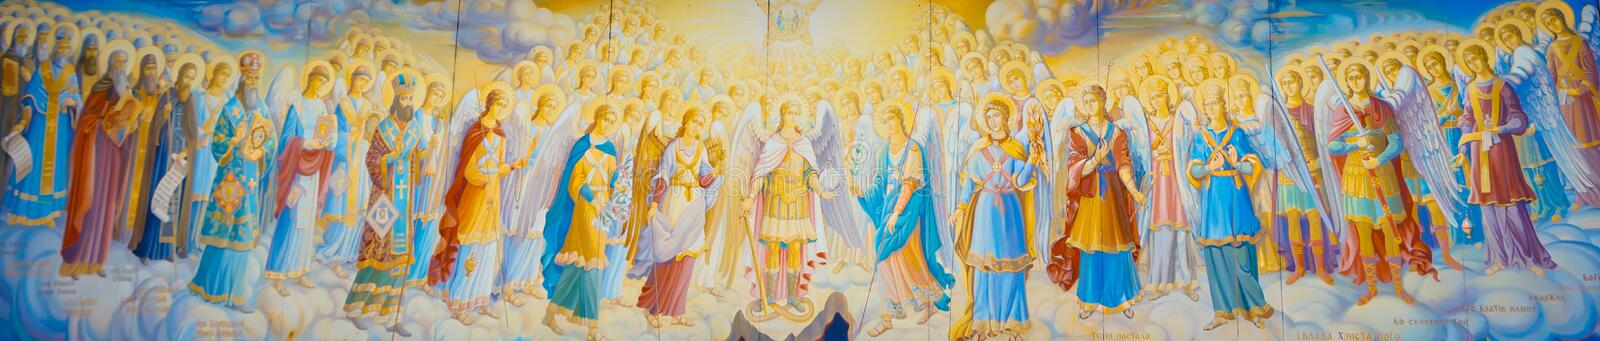 All archangels and saints royalty free stock images